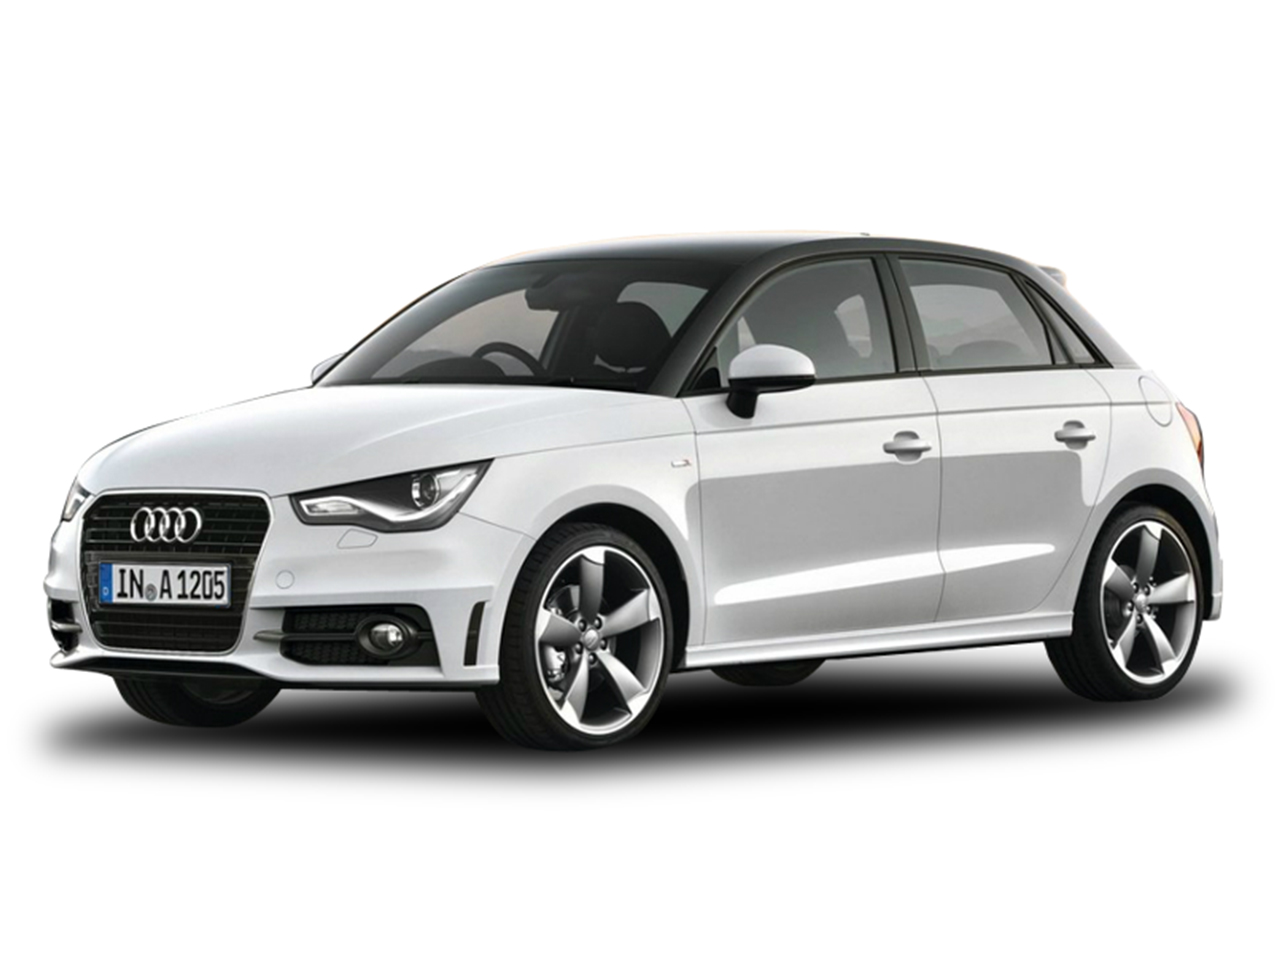 2017 Audi A1 Prices In Oman Gulf Specs Amp Reviews For